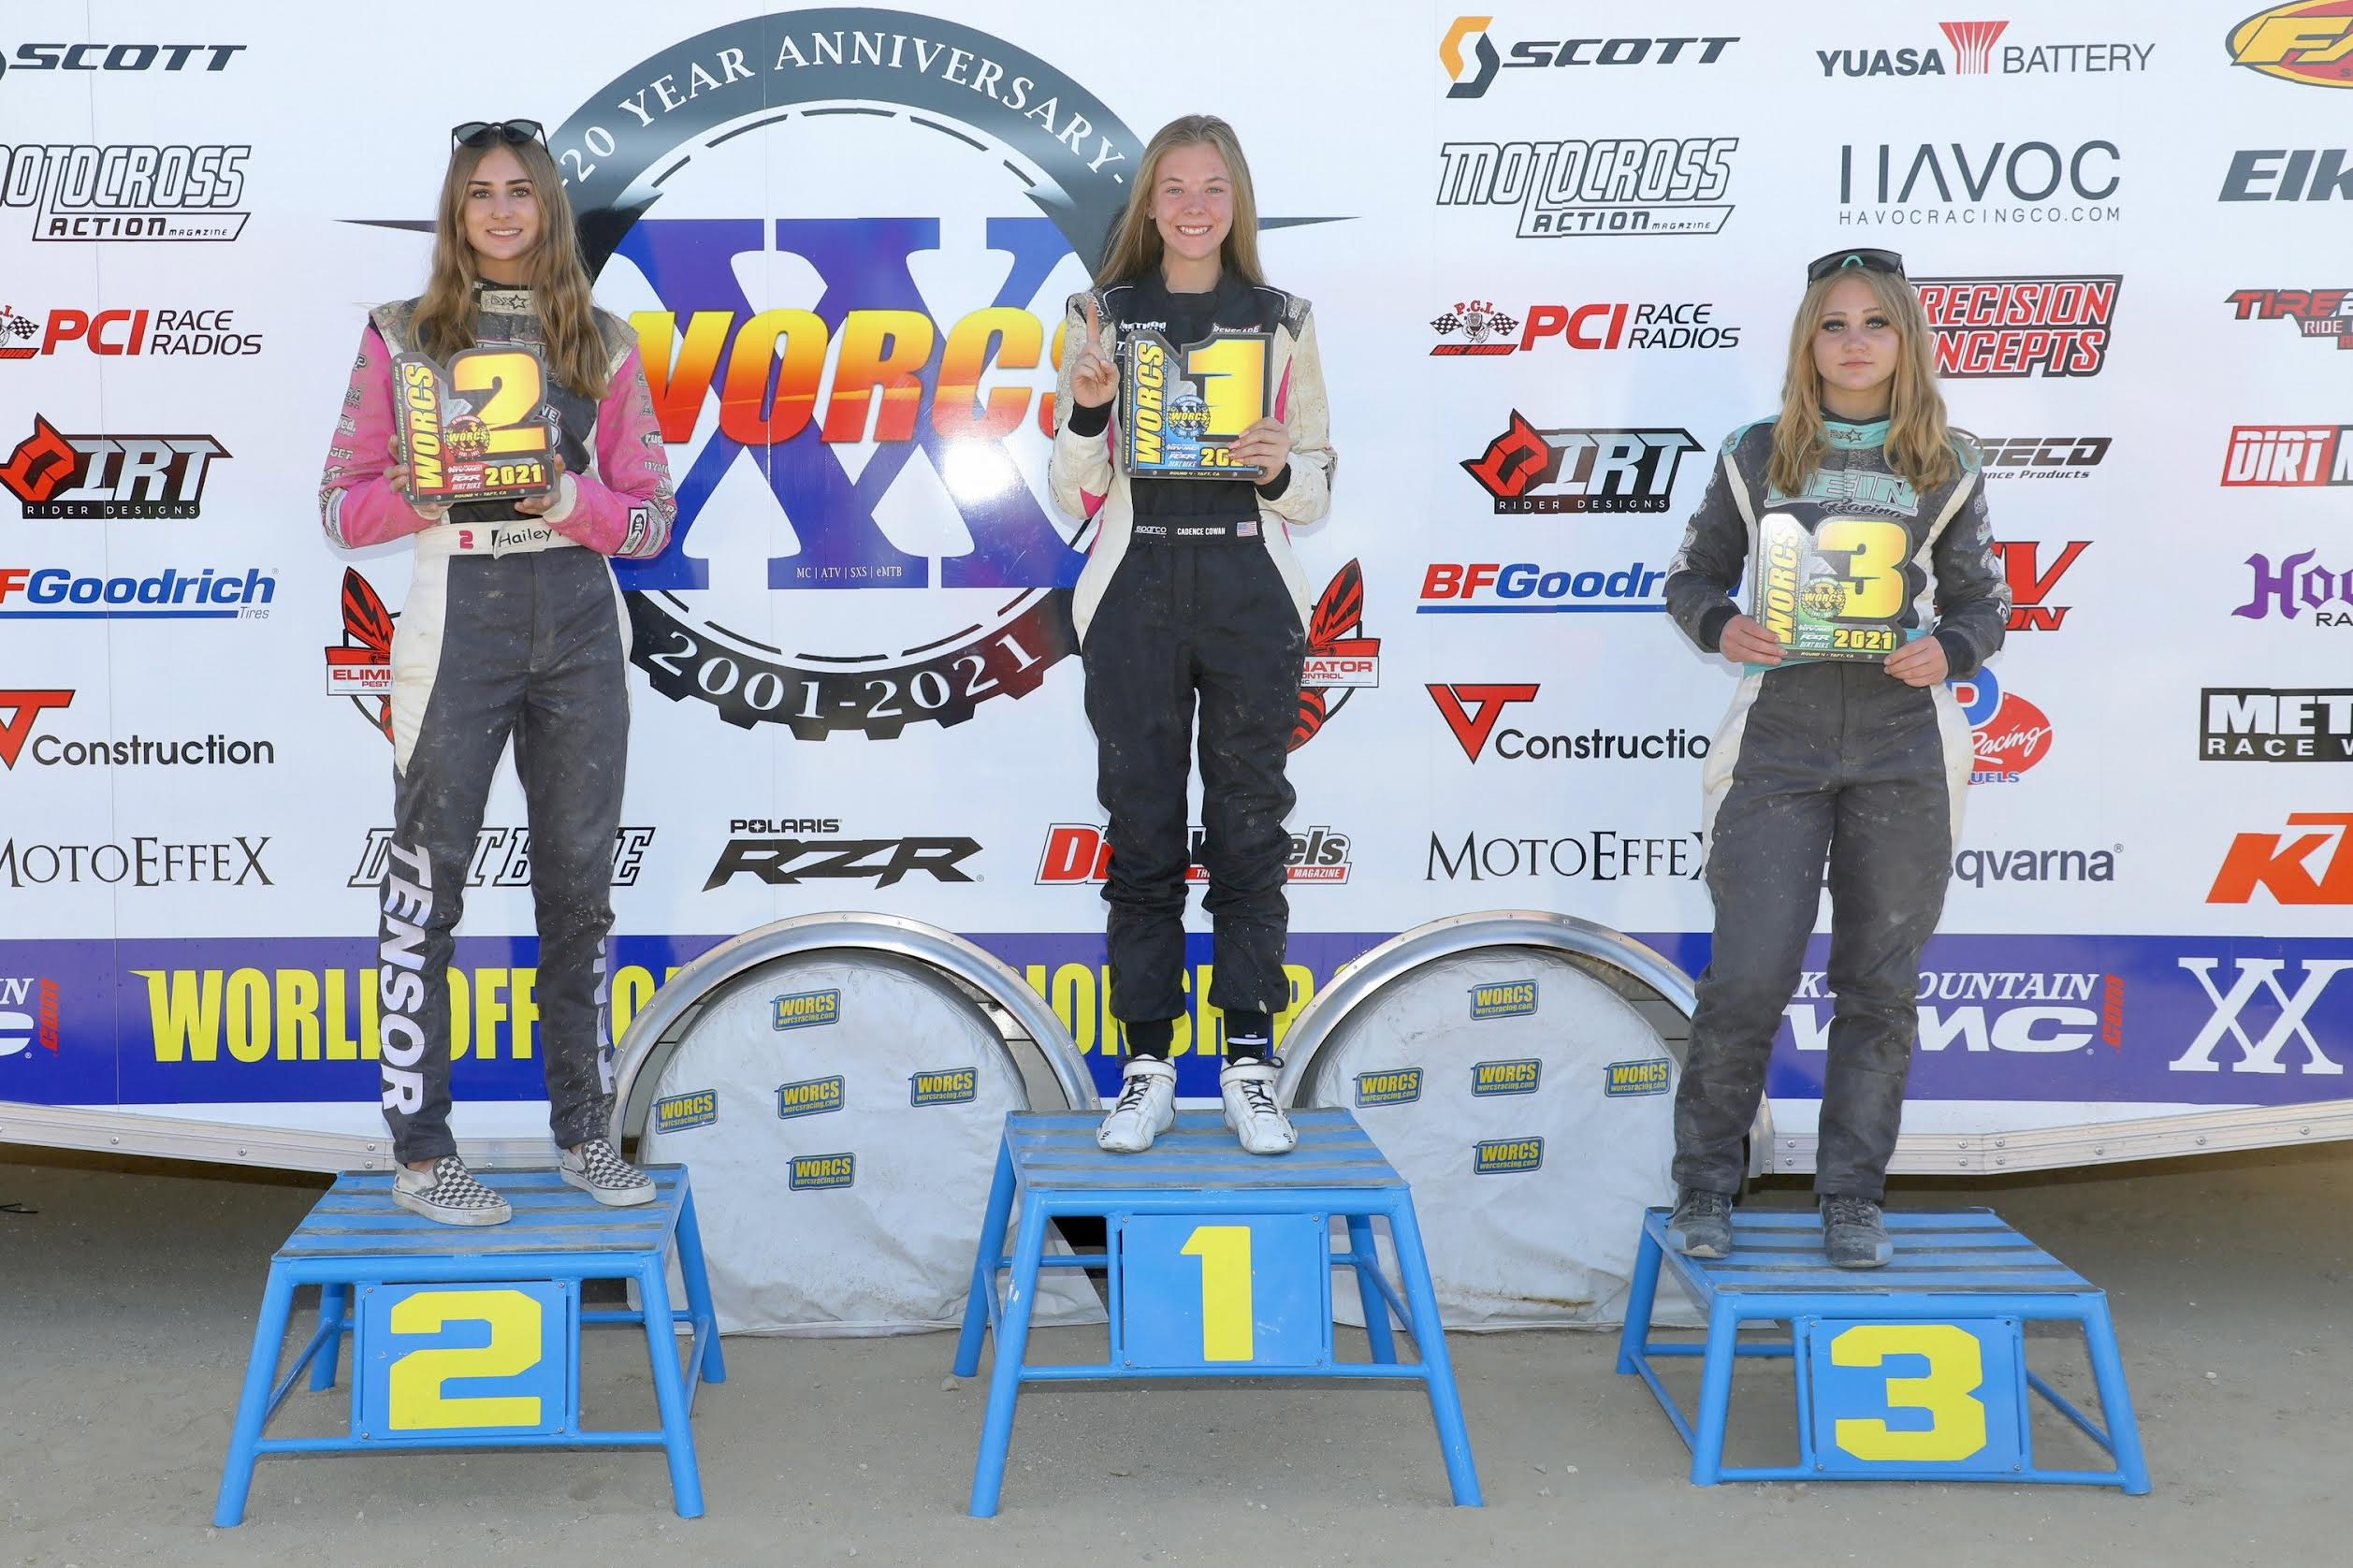 2021 Hailey Hein R4 Taft Amateur Race Report 3